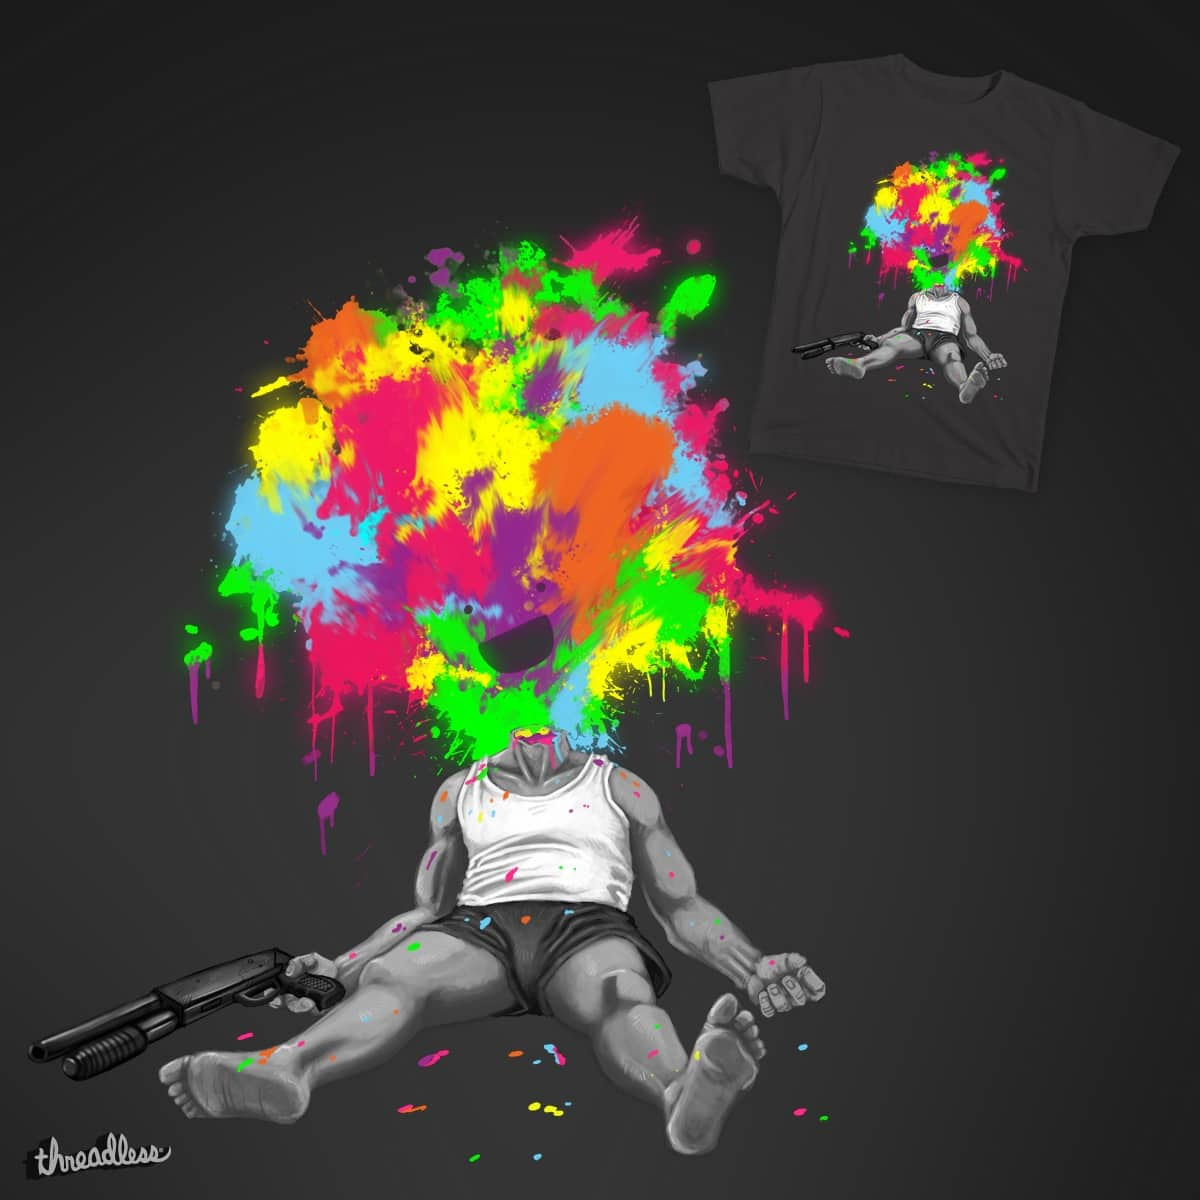 Happy Ending by Private_Random on Threadless